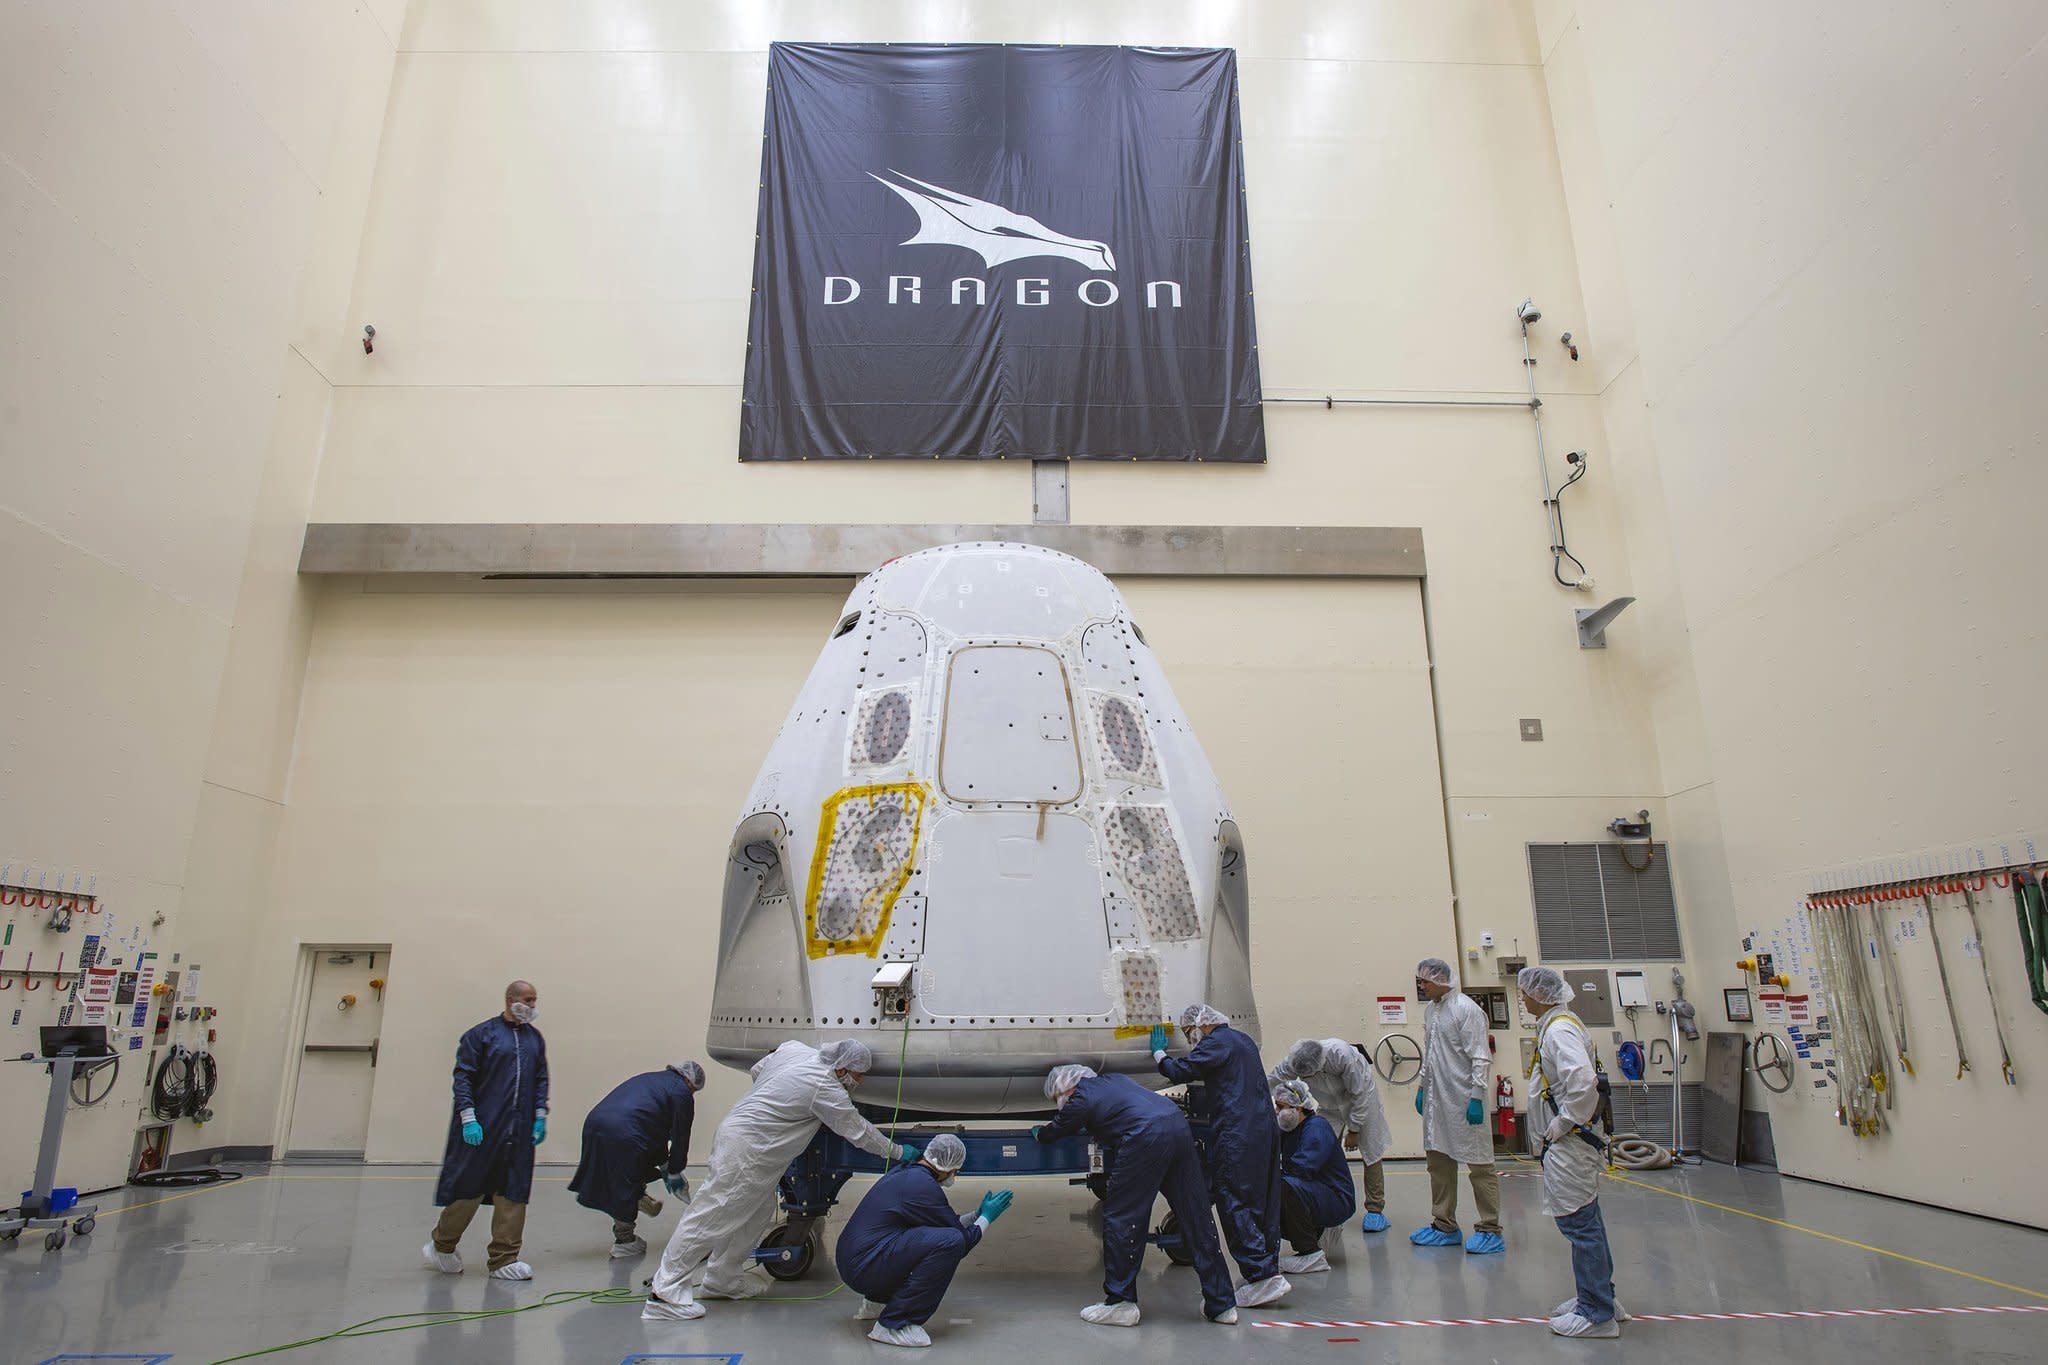 SpaceX Dragon in Florida Ahead of Human Spaceflight